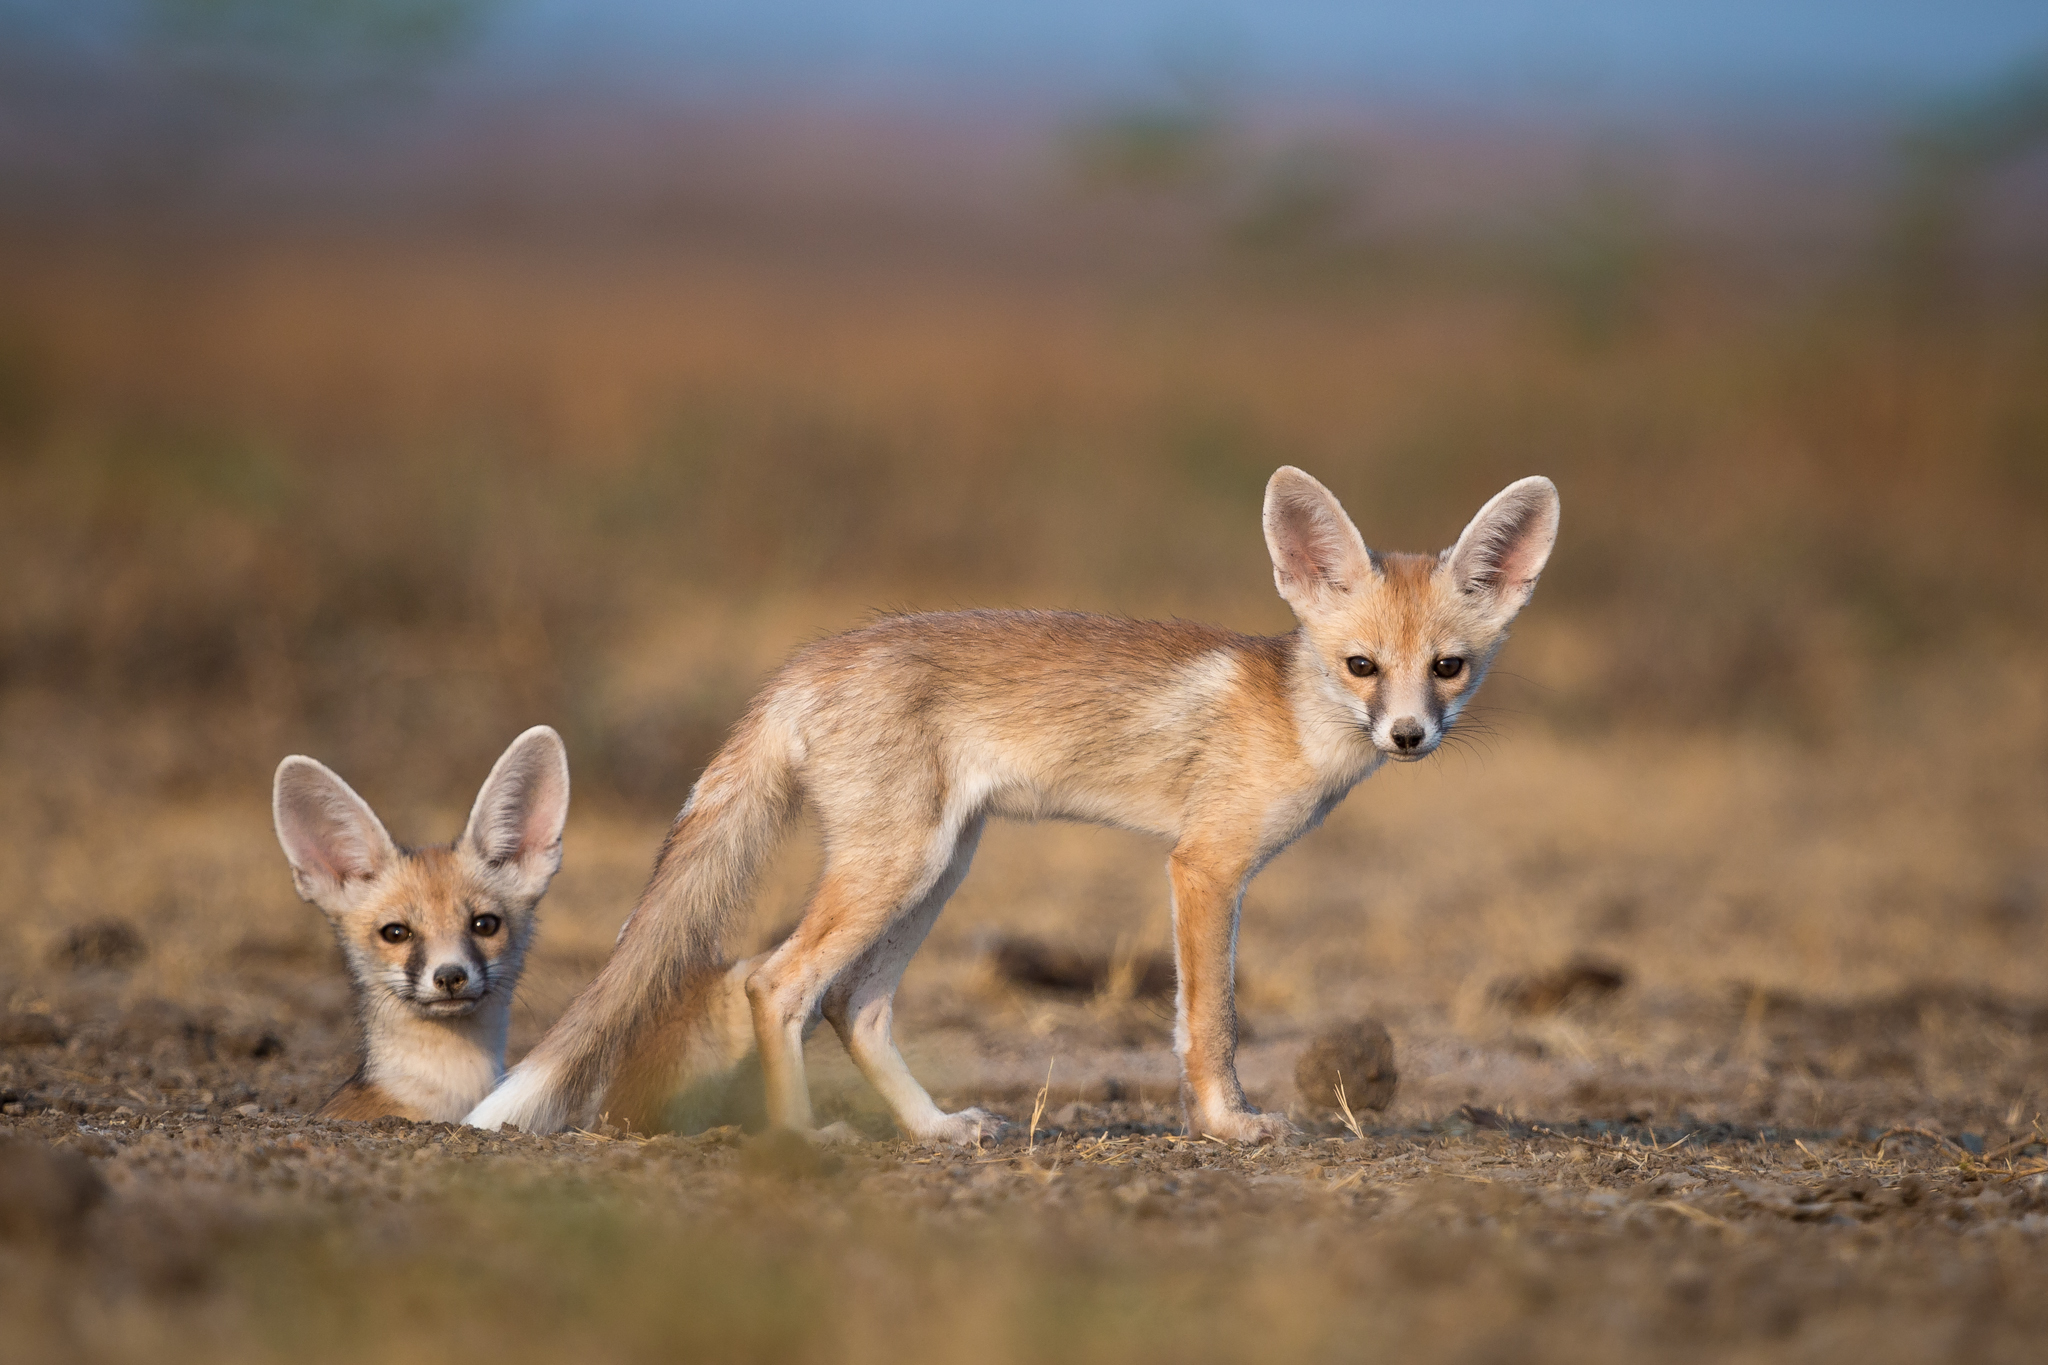 Foxes in the desert - photo#16